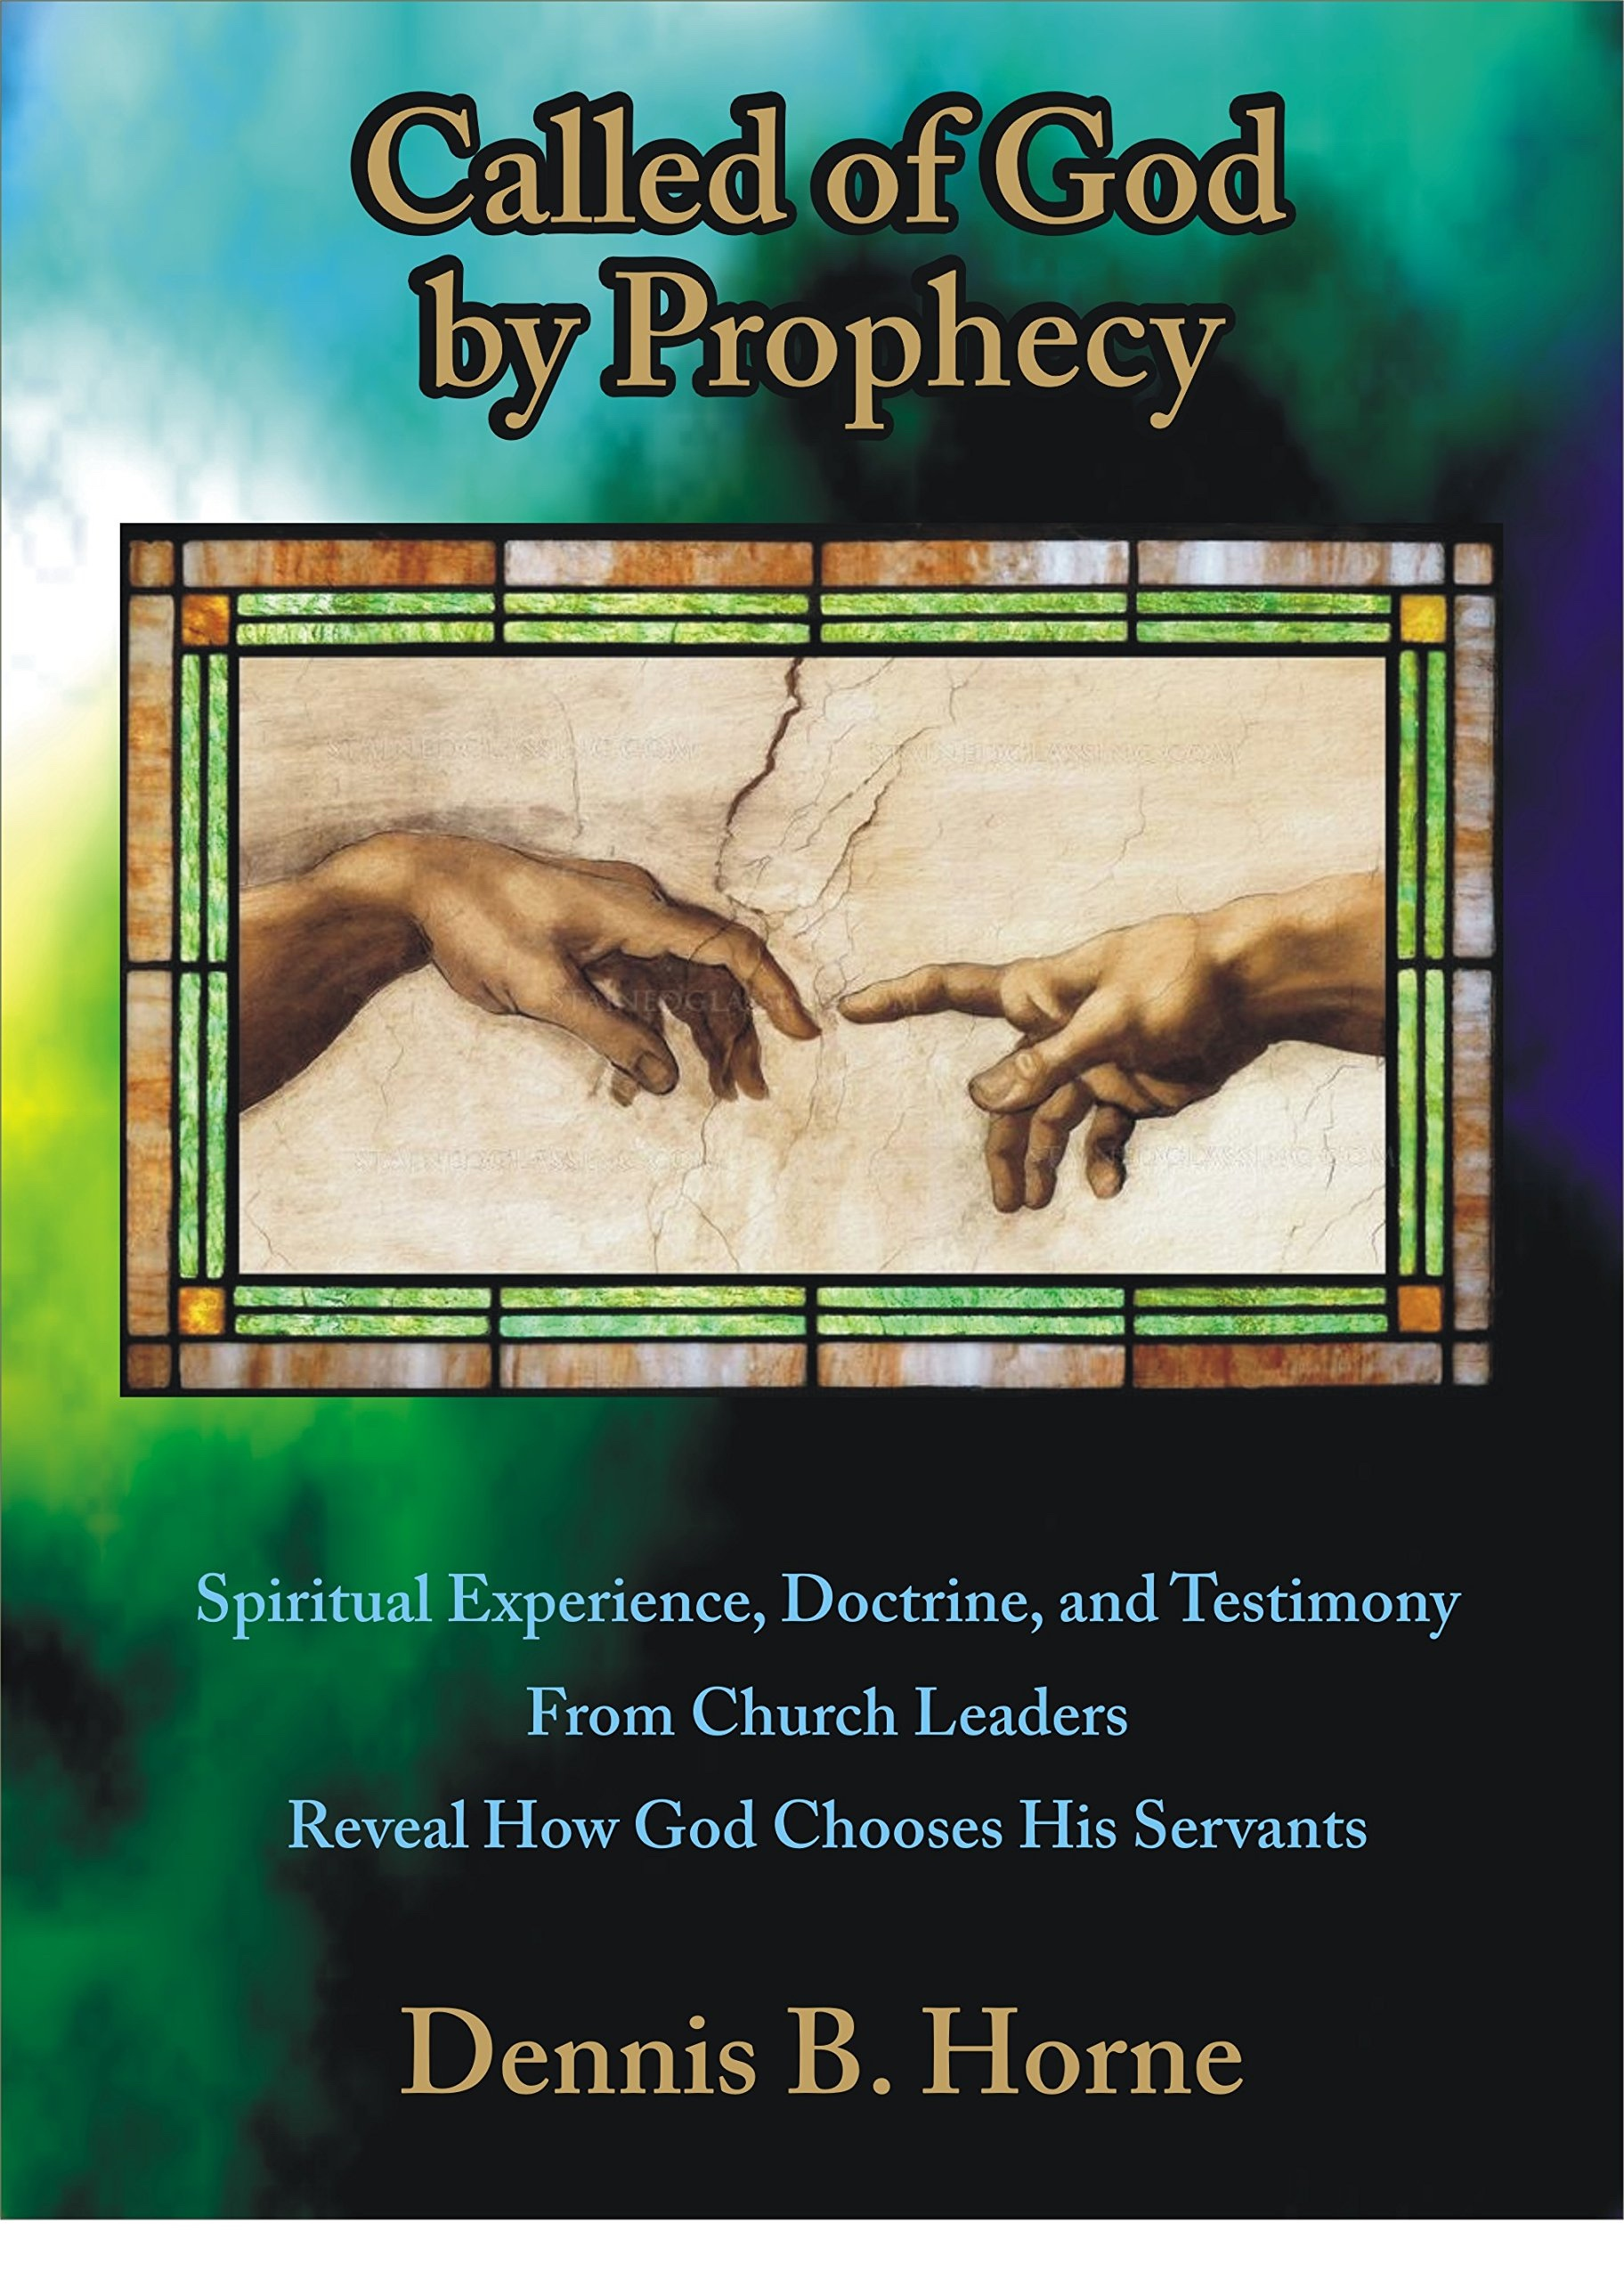 Called of God by Prophecy - Spiritual Experience, Doctrine, and Testimony From Church Leaders Reveal How God Chooses His Servants, Horne, Dennis B.